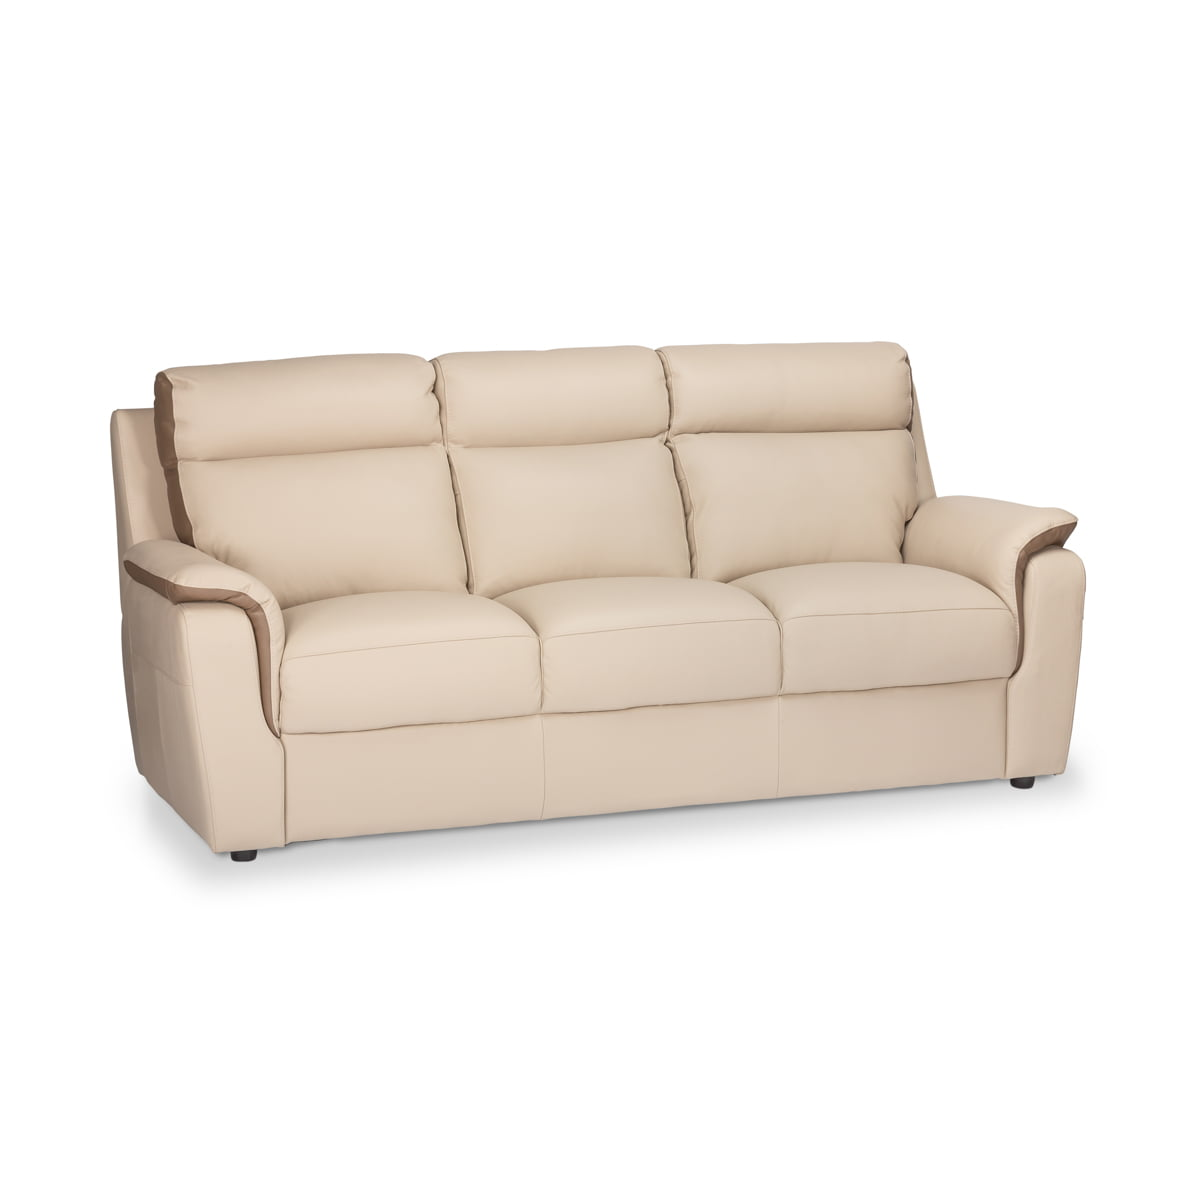 Donatella Leather 3 Seater Sofa